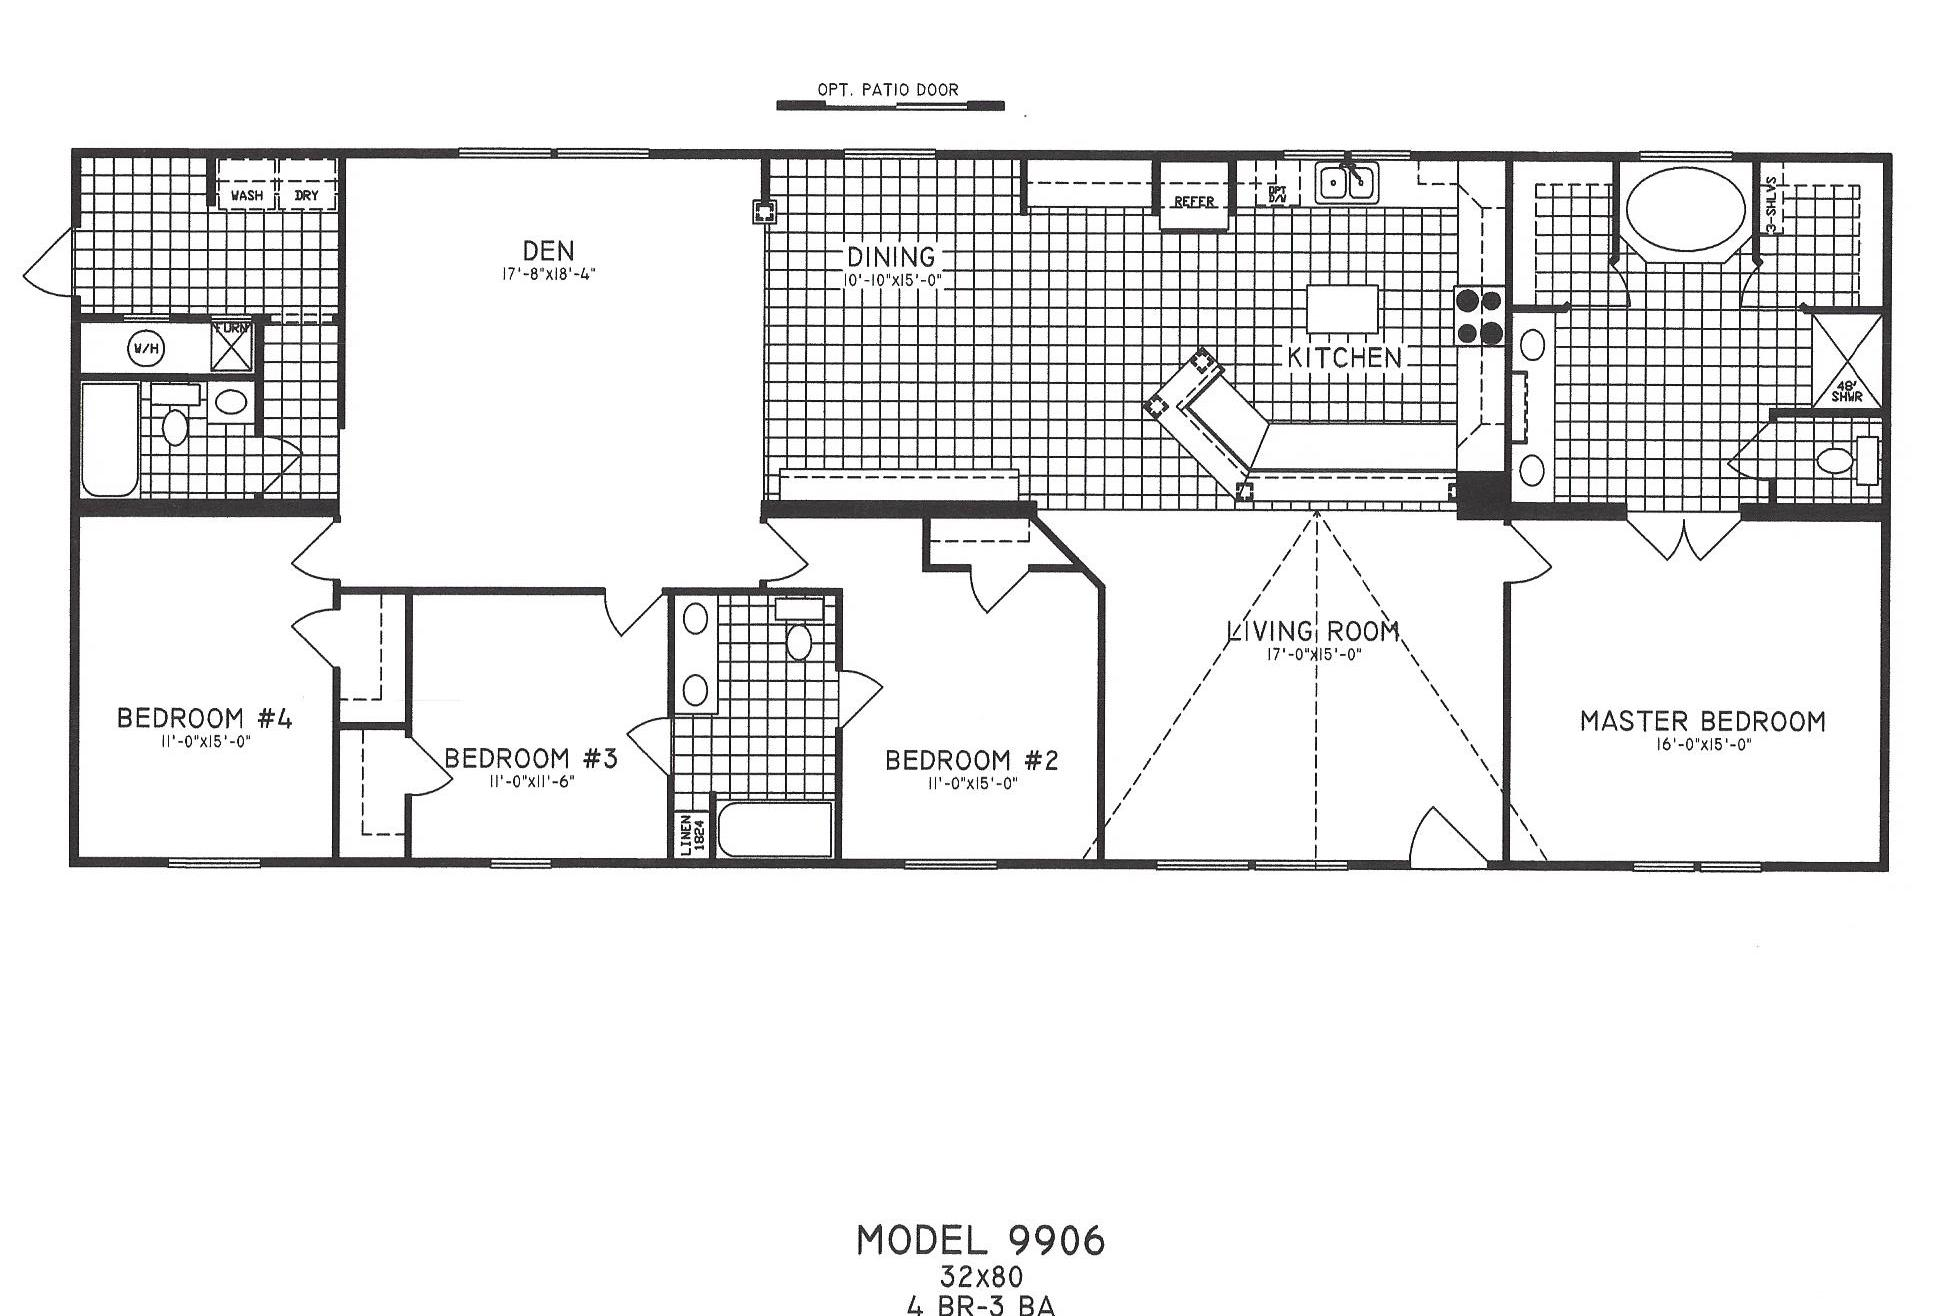 New Plan With Jack And Jill 3rd Bath. Large Living Room And Den. Great  Setup And Great Price!!